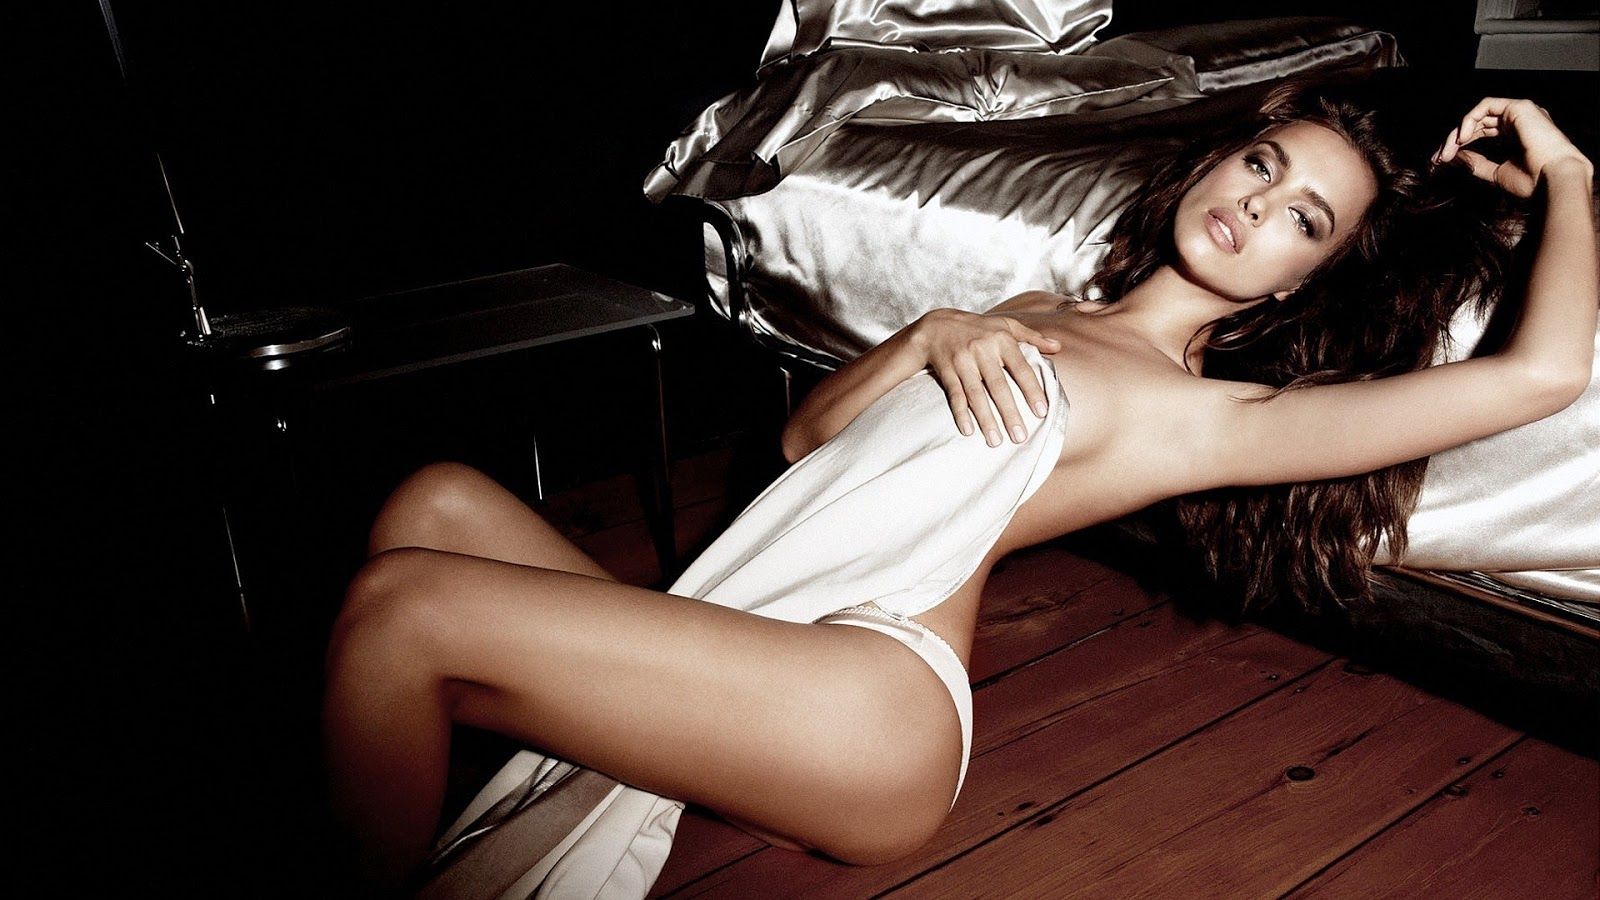 Hot Love Wallpaper In Hd : Irina Shayk Latest Hot HD Wallpapers 2013 World HD Wallpapers